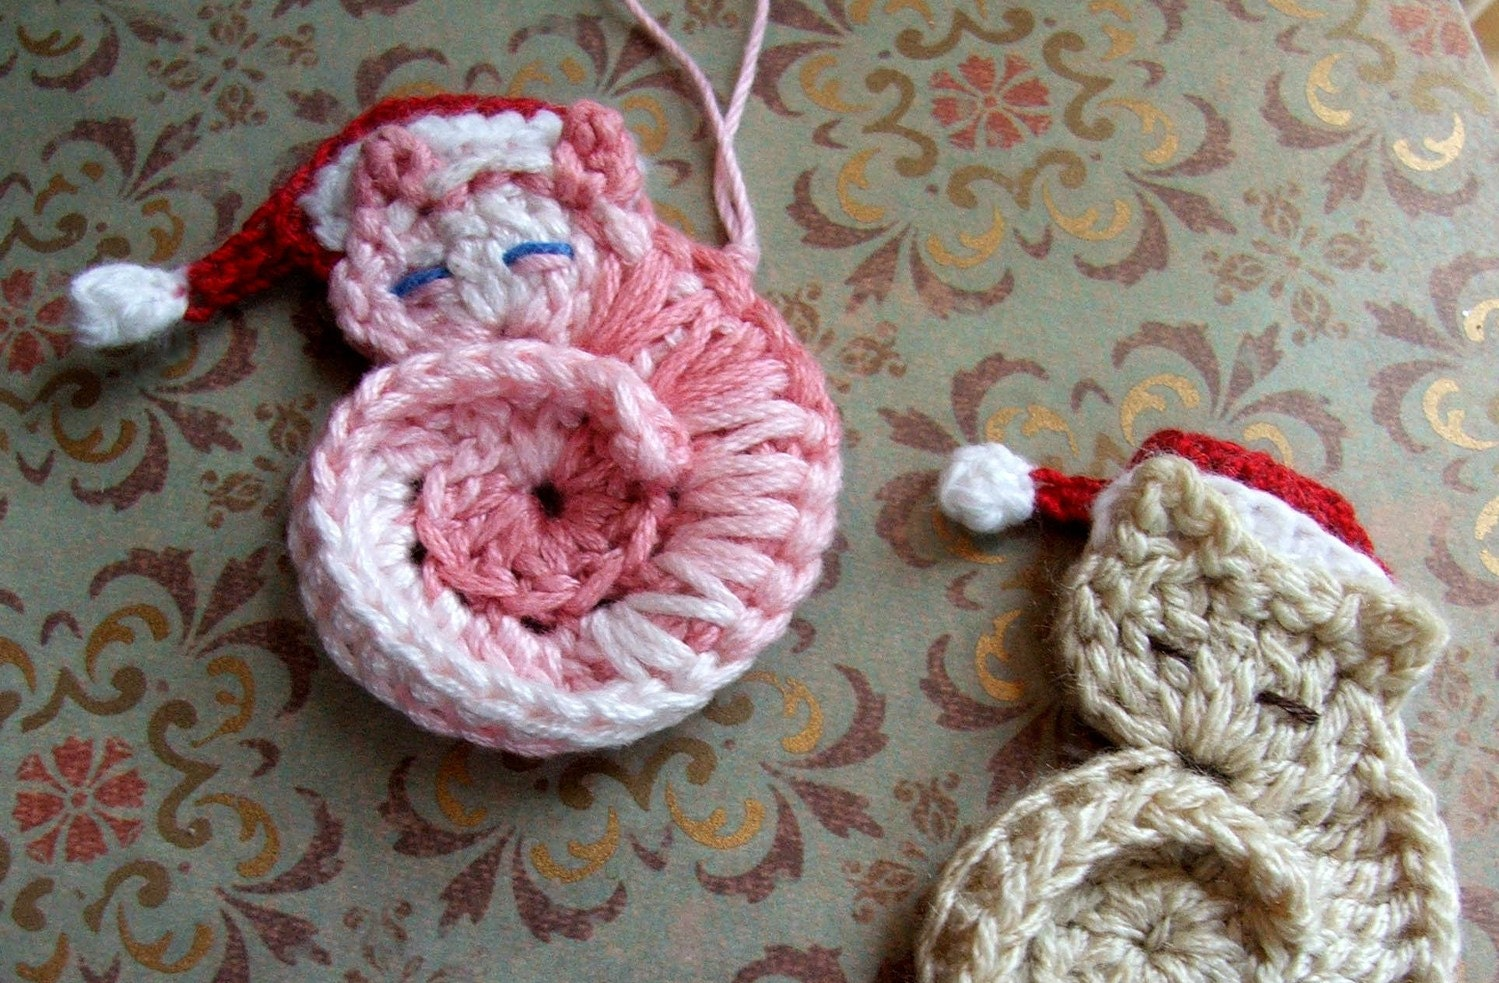 Crochet Pattern Darling Kitty Tiny Crocheted Cat Ornament